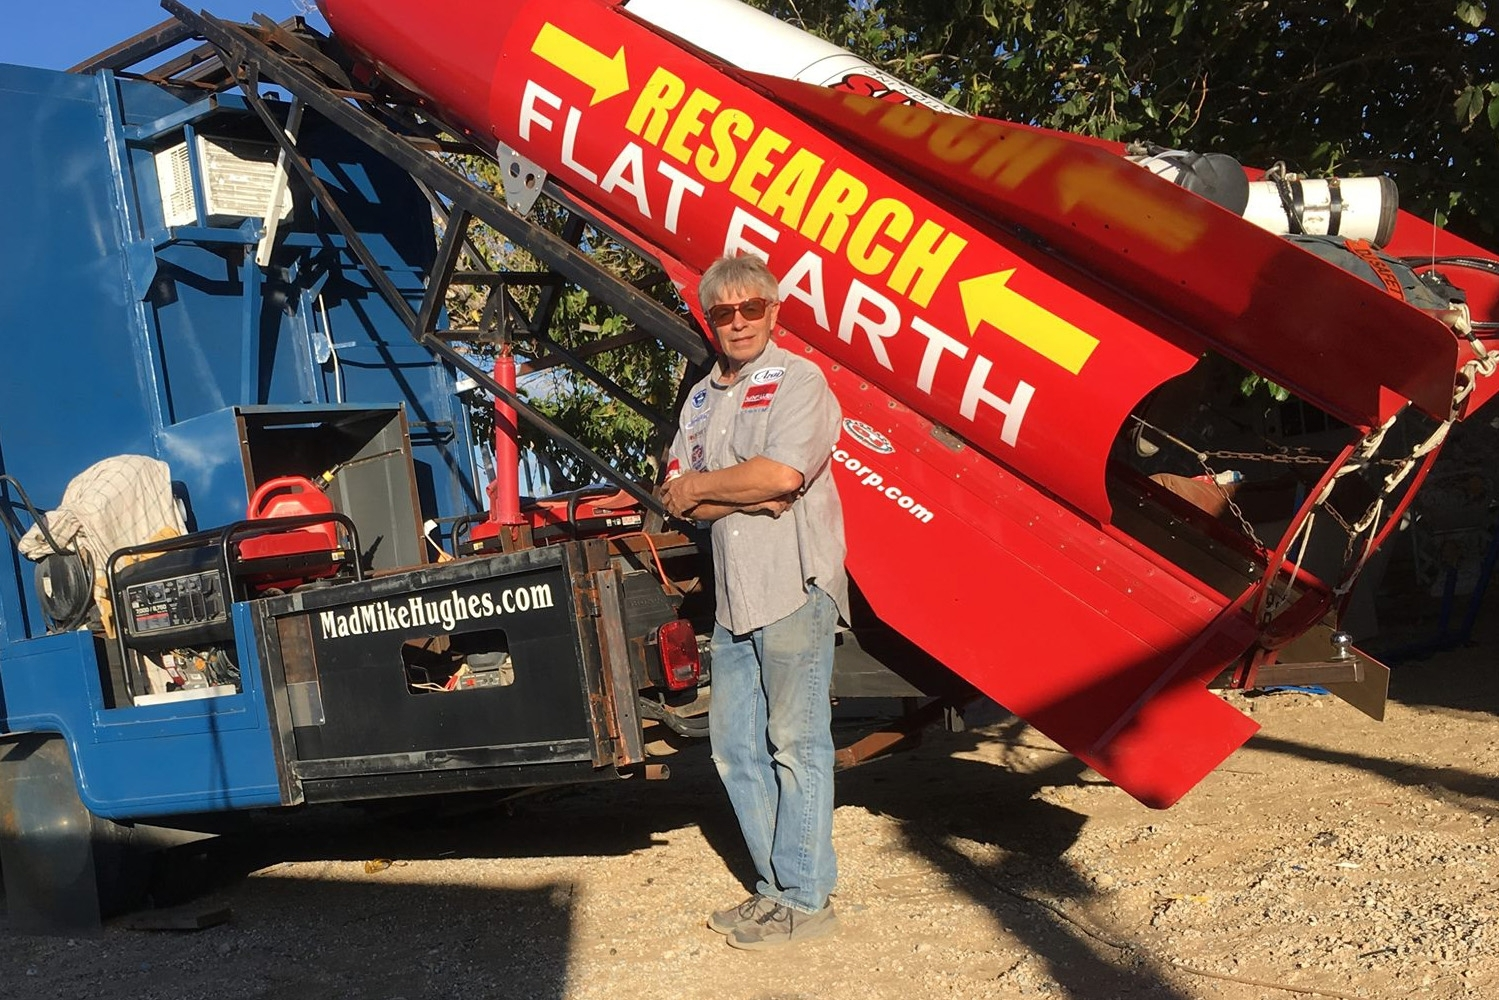 Mad Mike Hughes Flat Earth Rocket